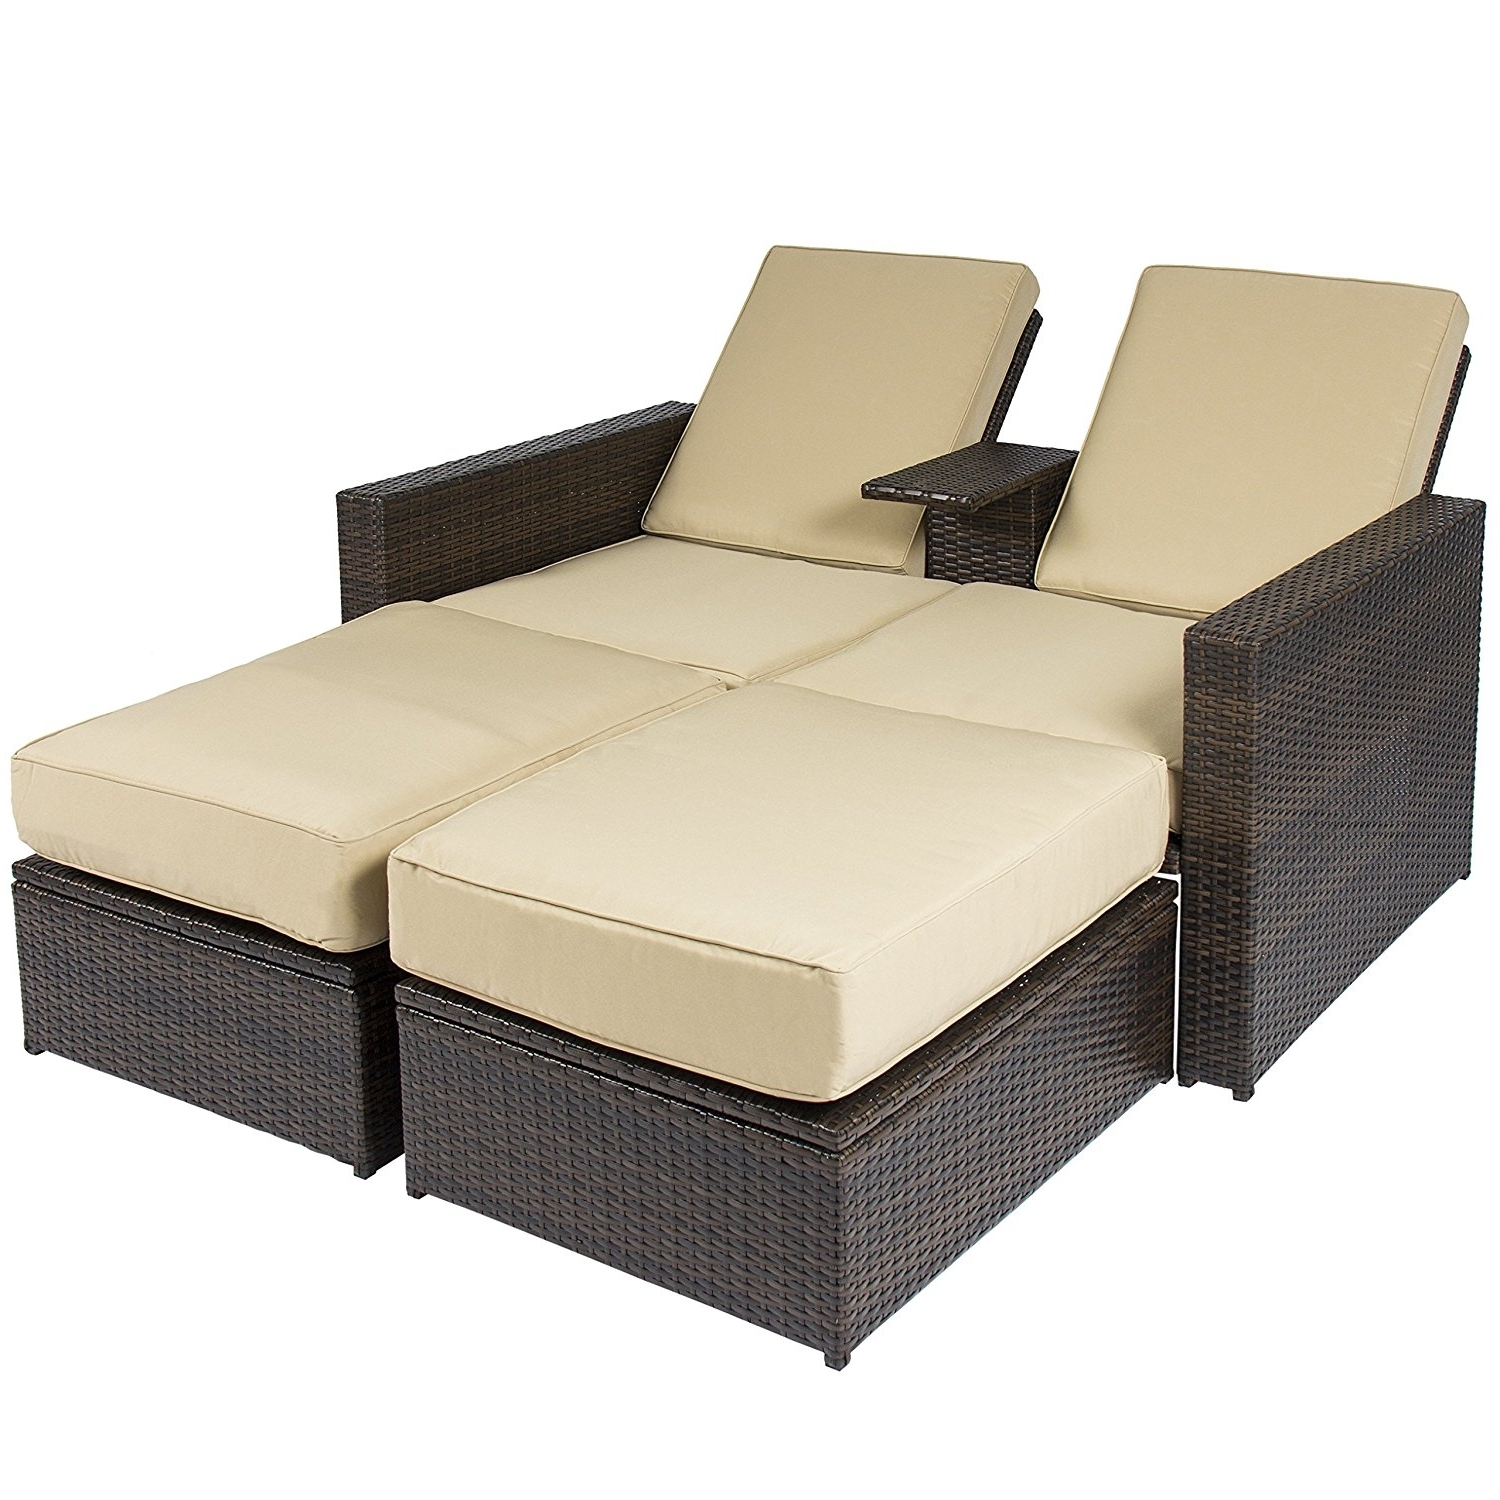 Most Up To Date Double Chaise Lounge Chairs Regarding Amazon : Best Choice Products Outdoor 3pc Rattan Wicker Patio (View 15 of 15)